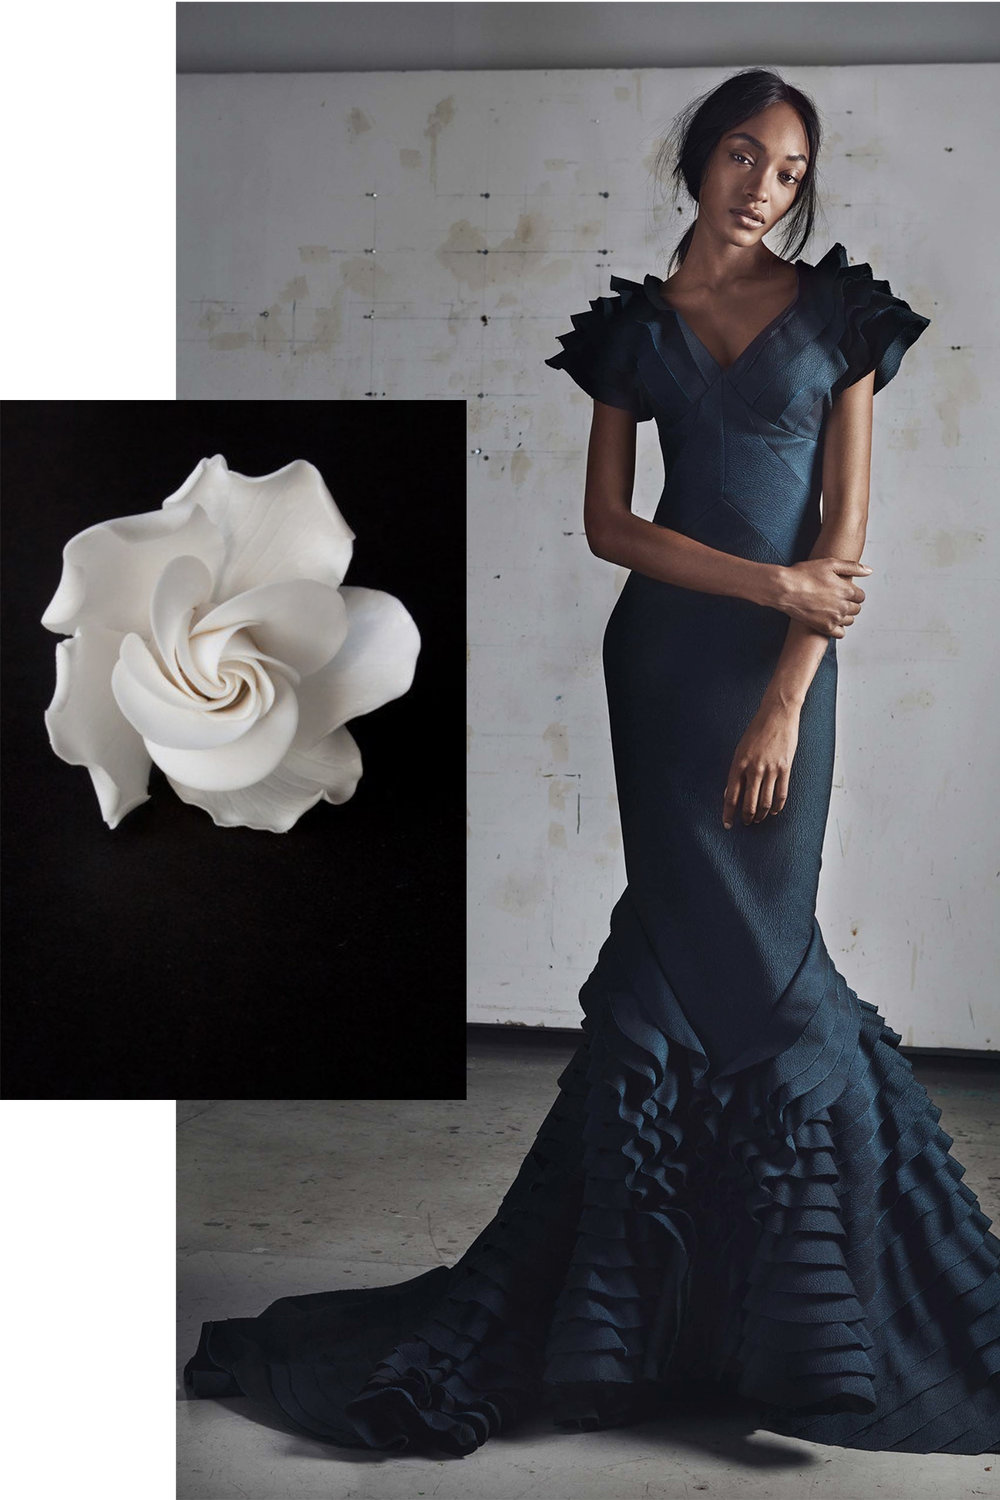 Zac Posen paired with Gardenia